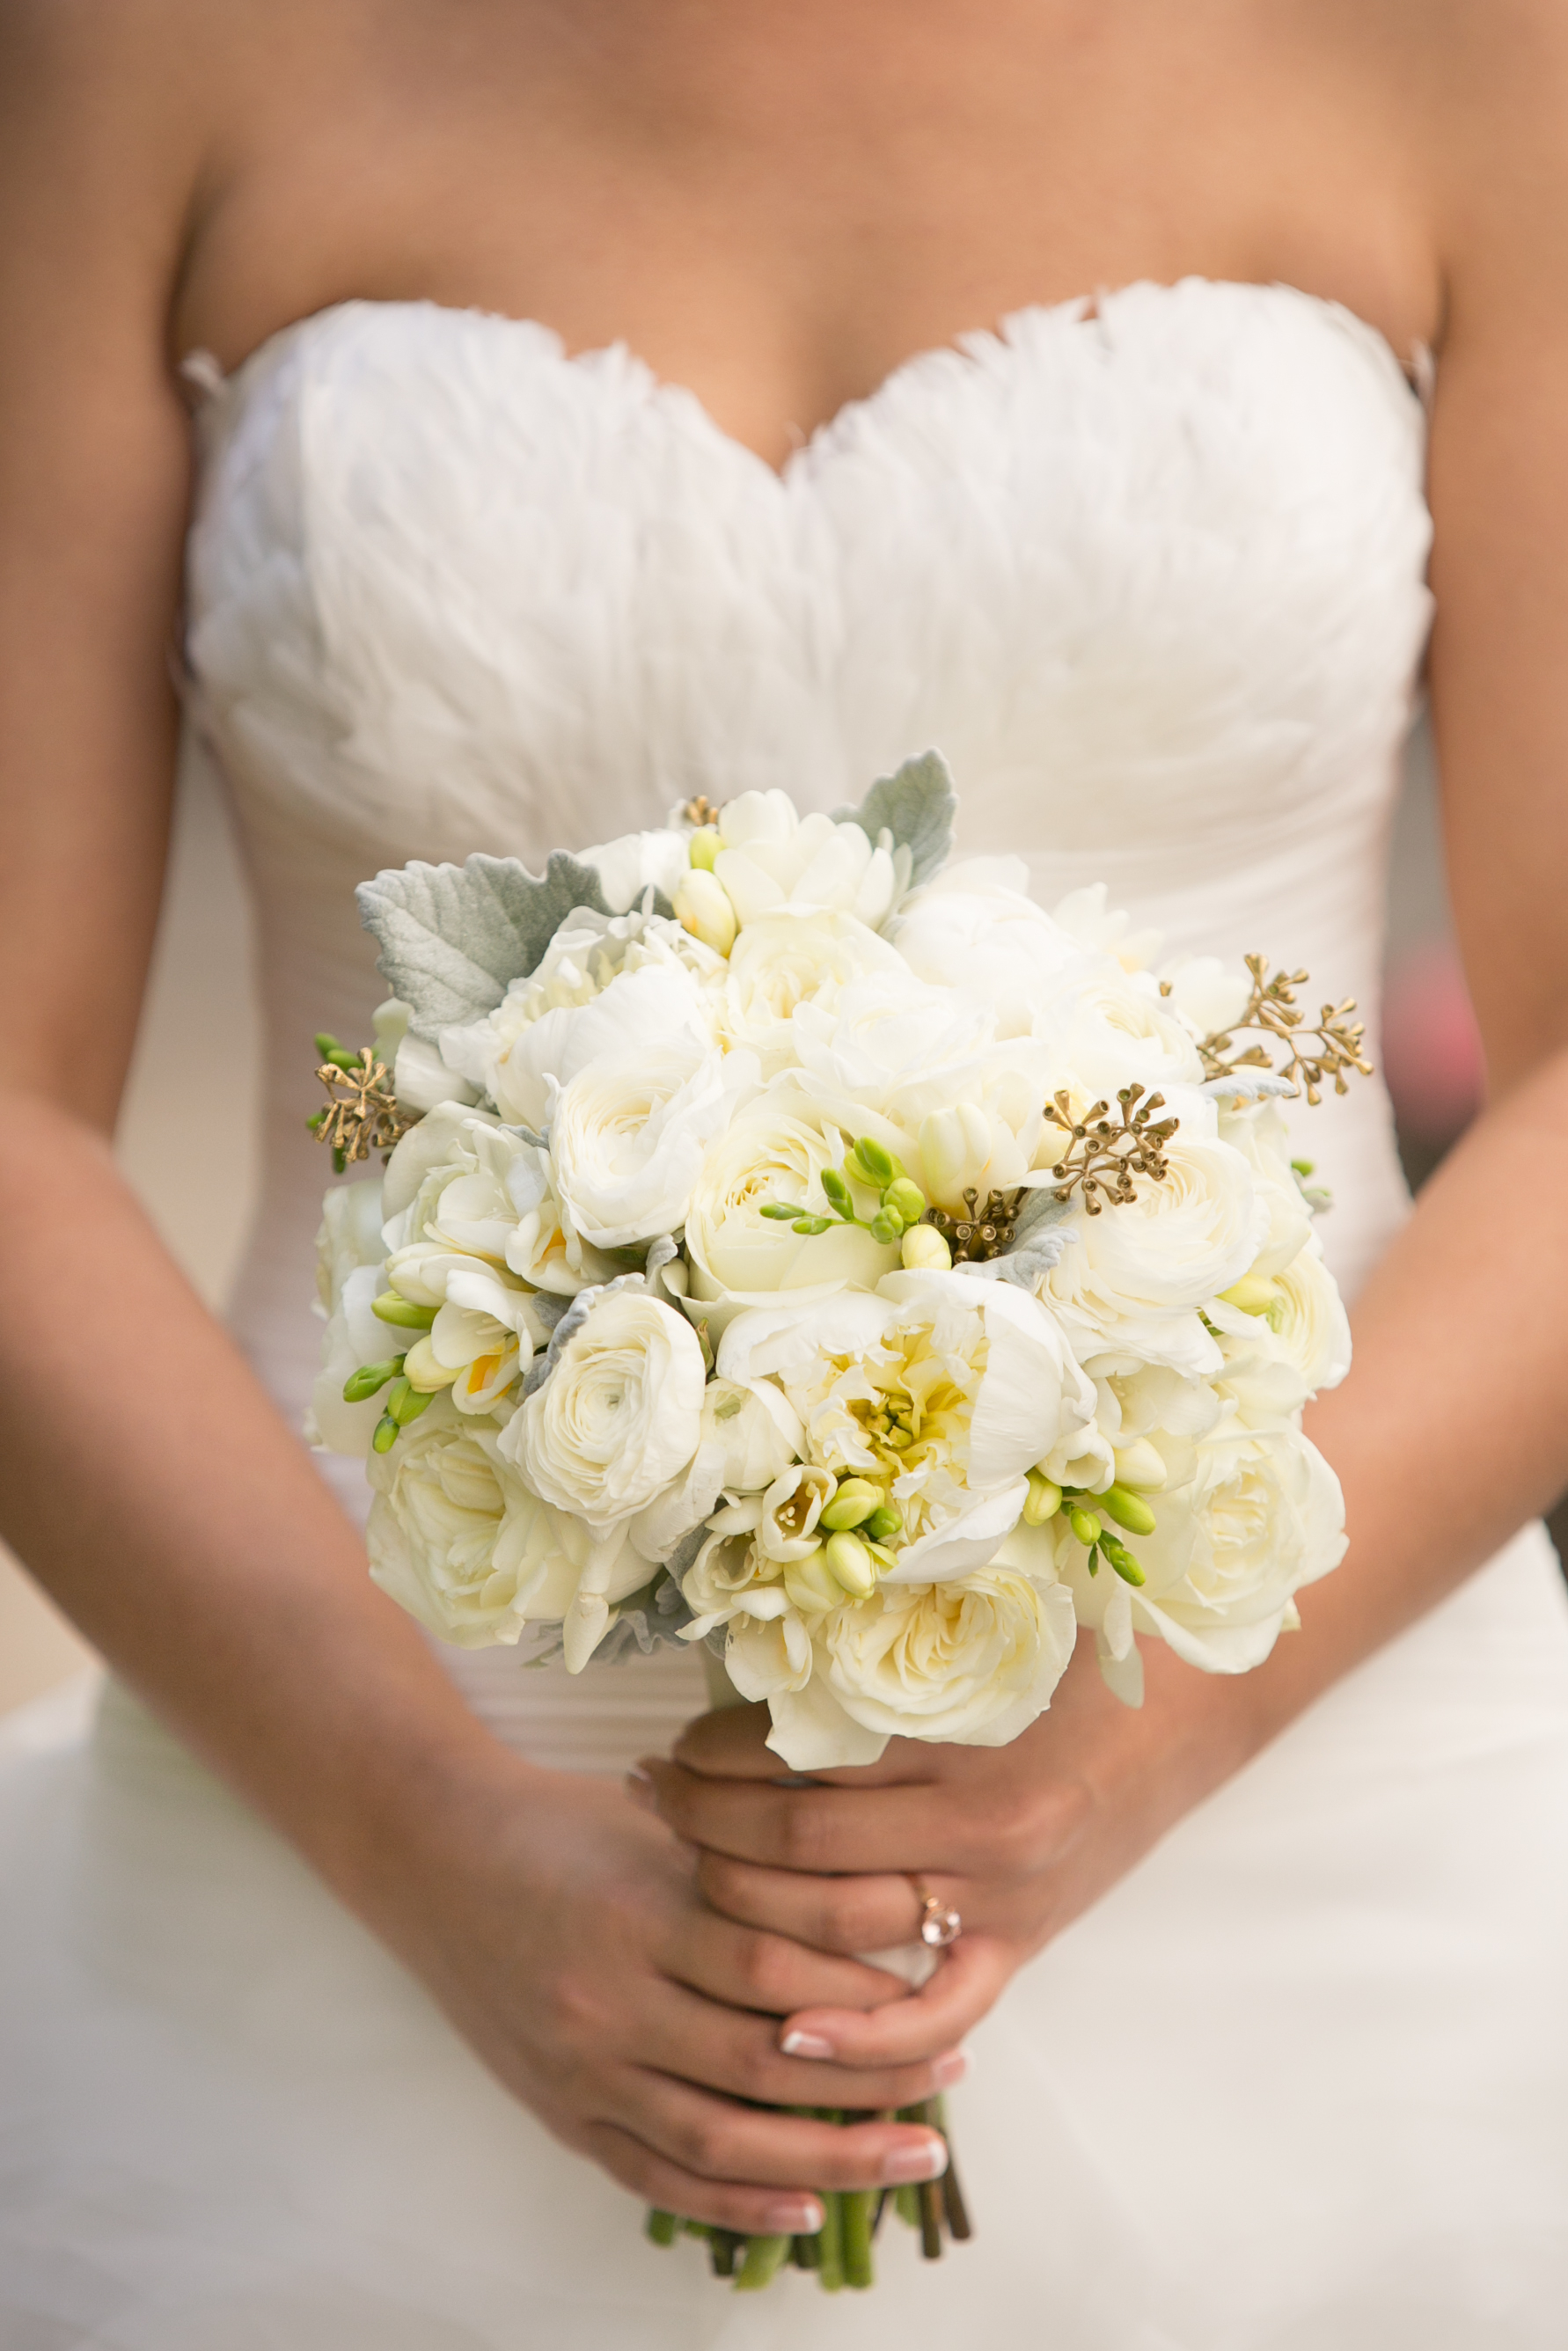 Jenny carried a natural design hand tied bouquet with mostly white flowers accented with dusty green and gold. Flowers included: peonies, rose, ranunculus, freesia, tulips.